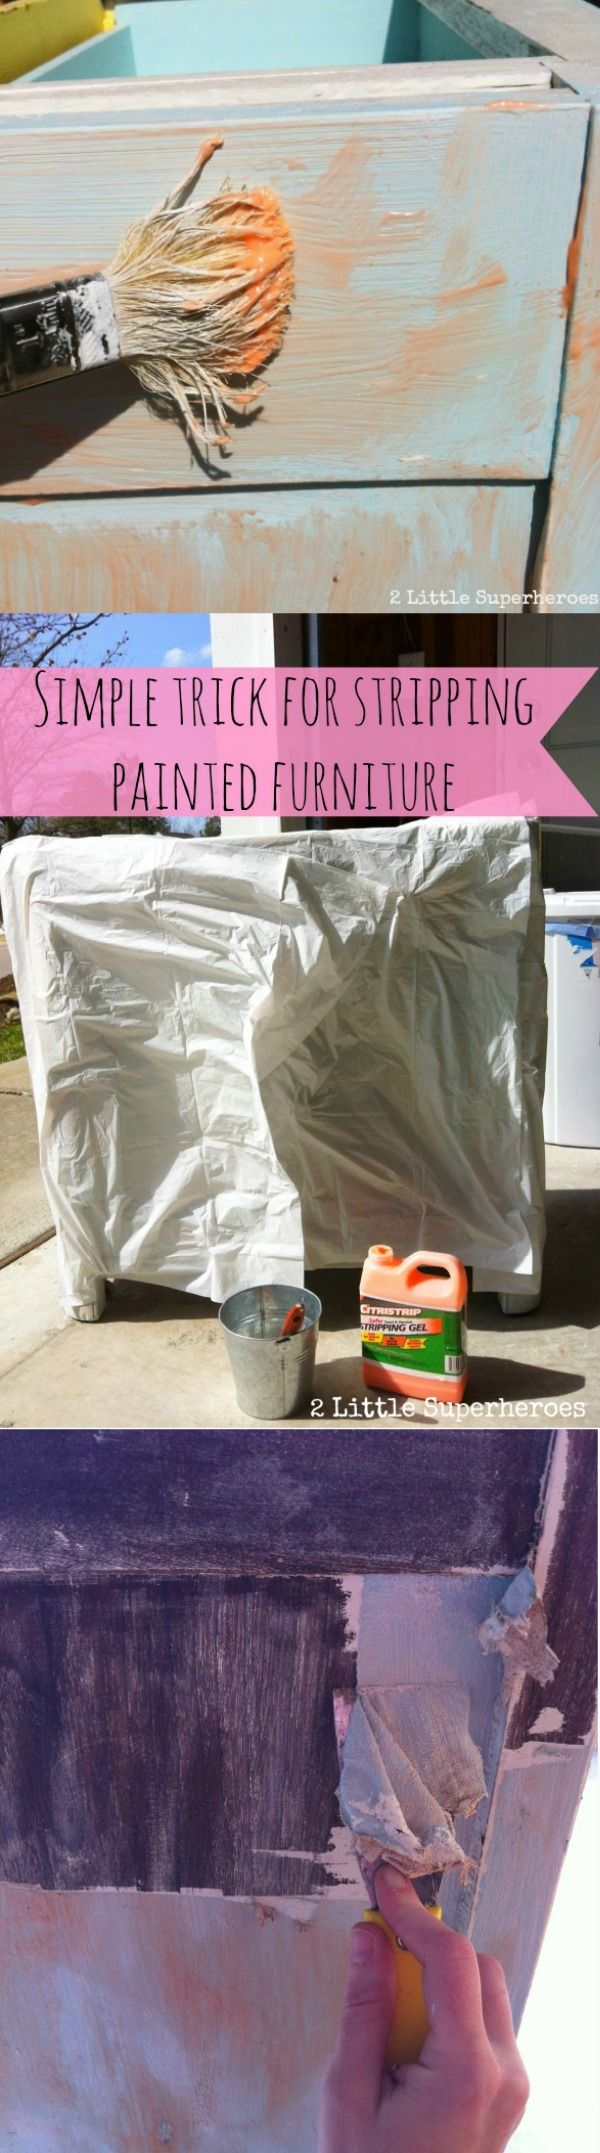 This is the best tip for easily removing layers of old paint from furniture. You won't believe how simple this is!